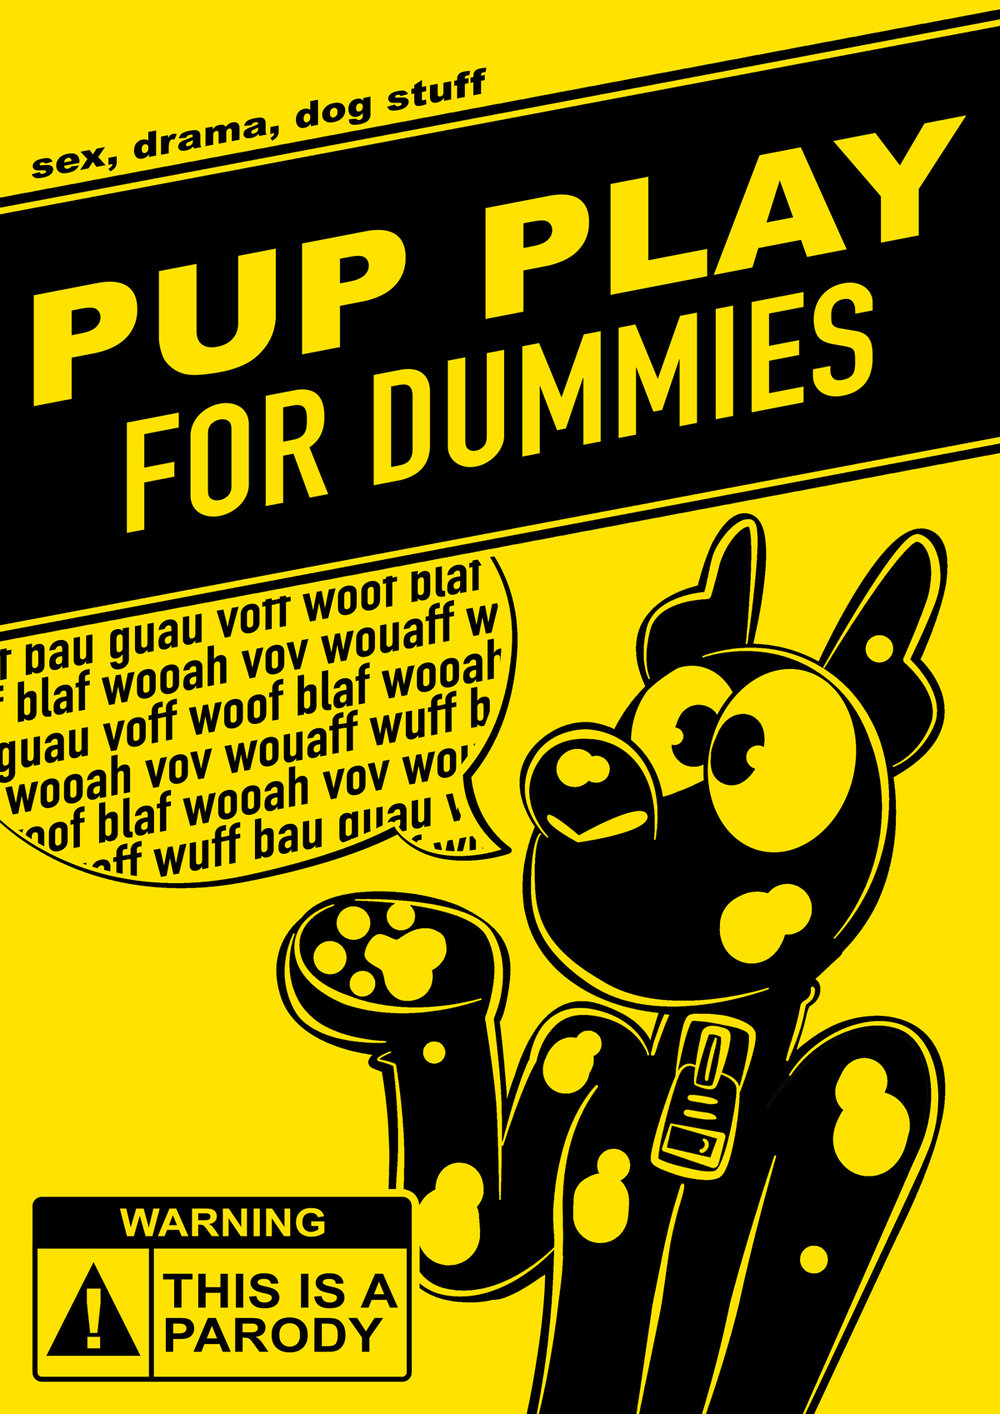 Pupplay for Dummies  A small A5 parody zine I published February 2018 themed around poking fun at petplay.